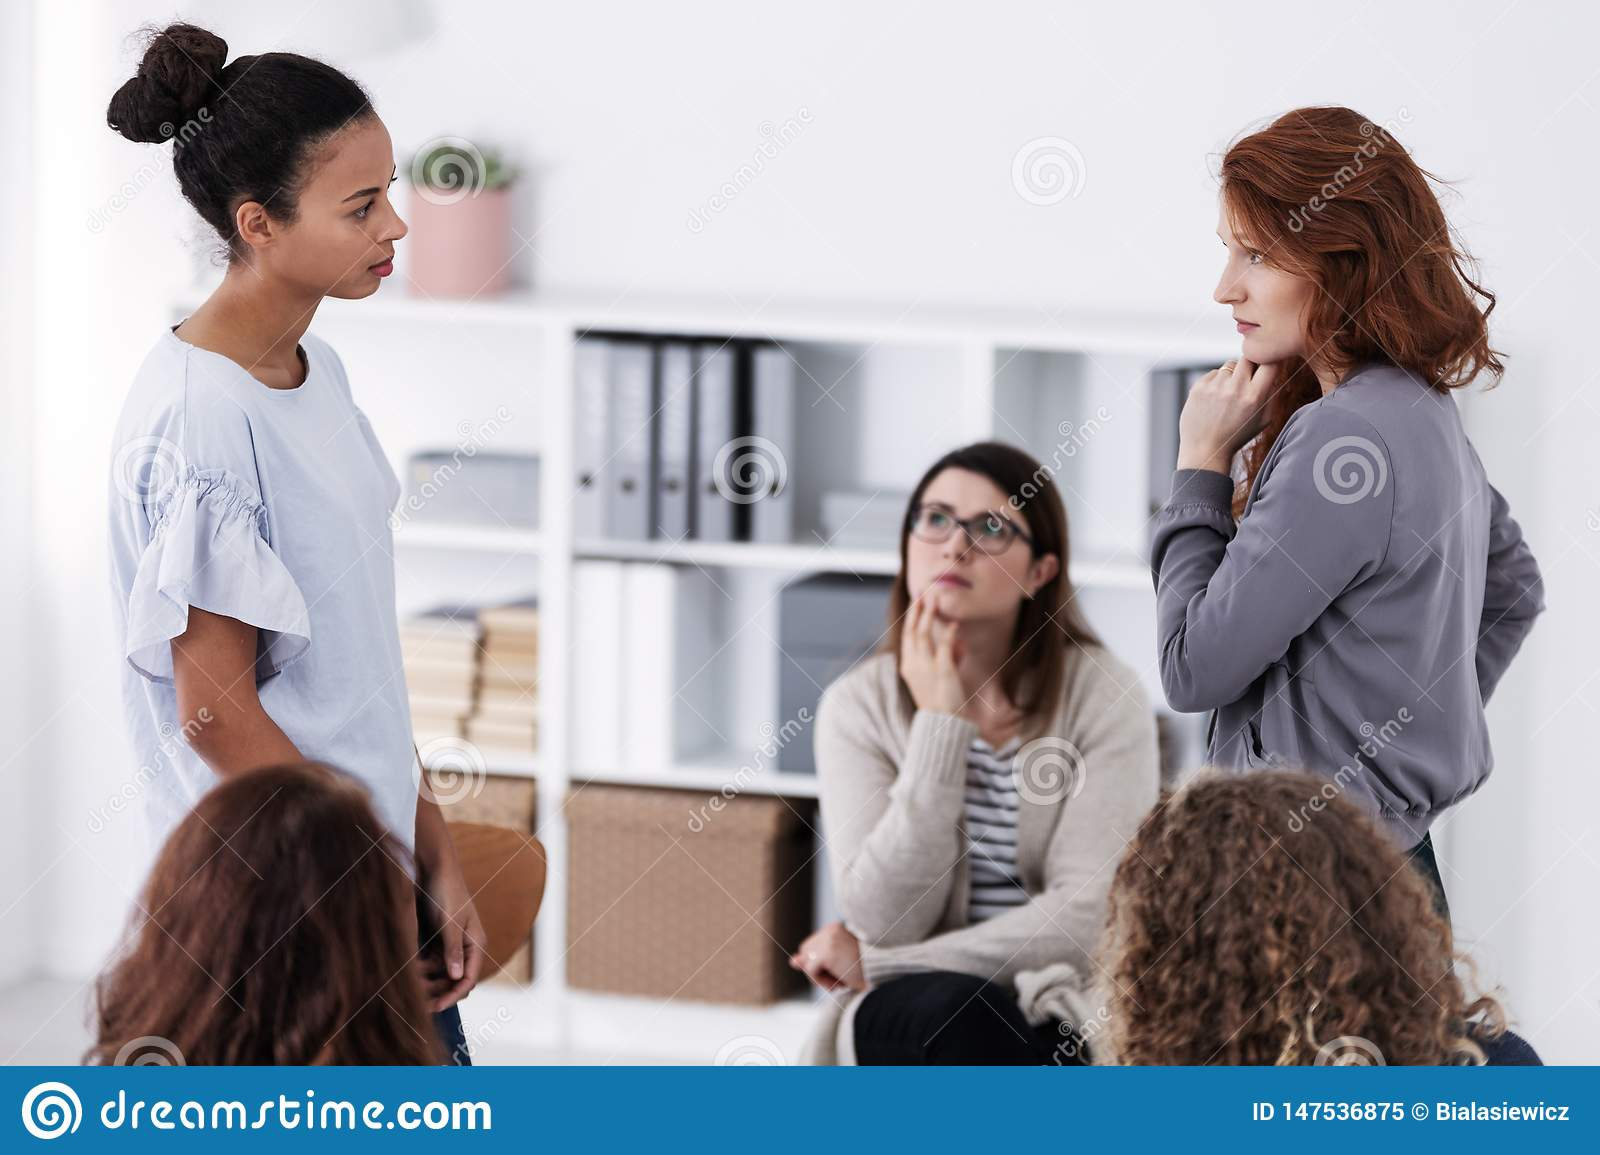 Two brave women standing and looking at each other during role paying at psychotherapy support meeting